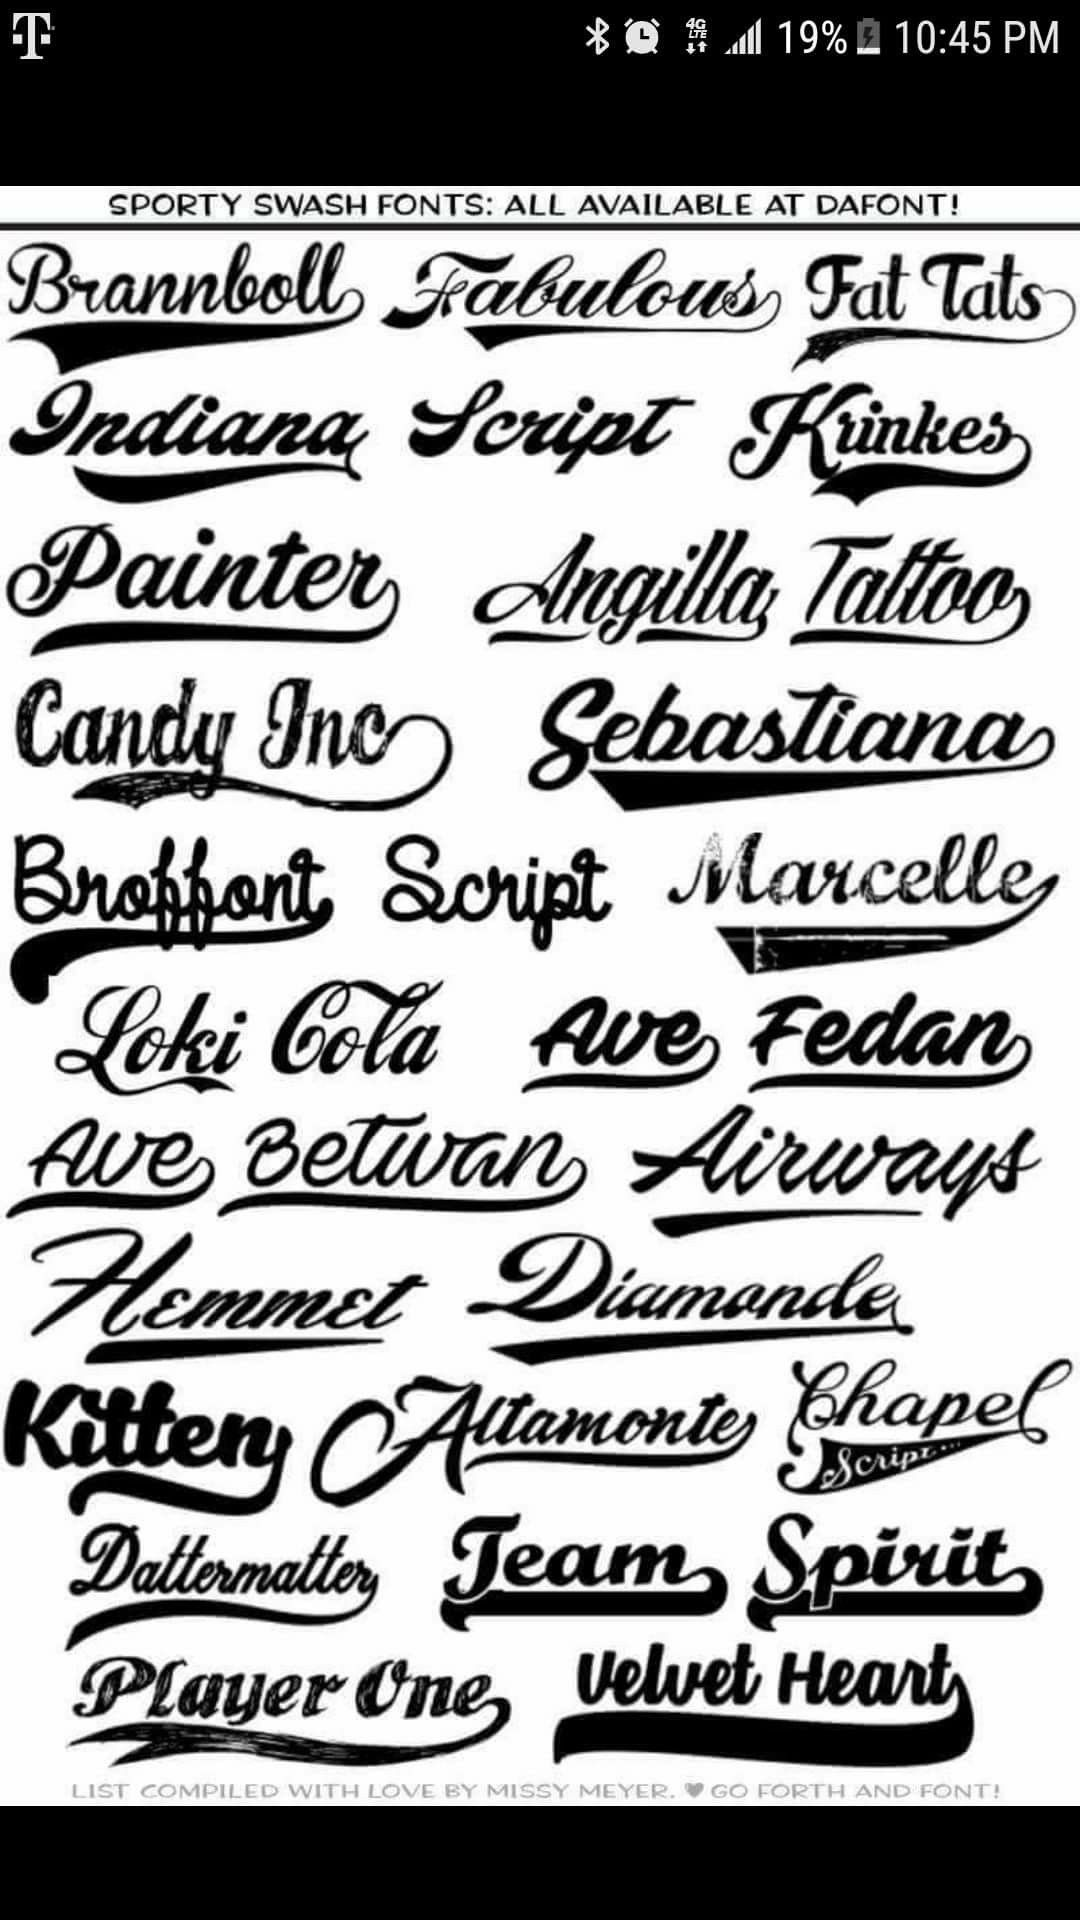 Calligraphy Font Generator Html Sporty Swash Fonts At Dafont Cricut Cricut Fonts Baseball